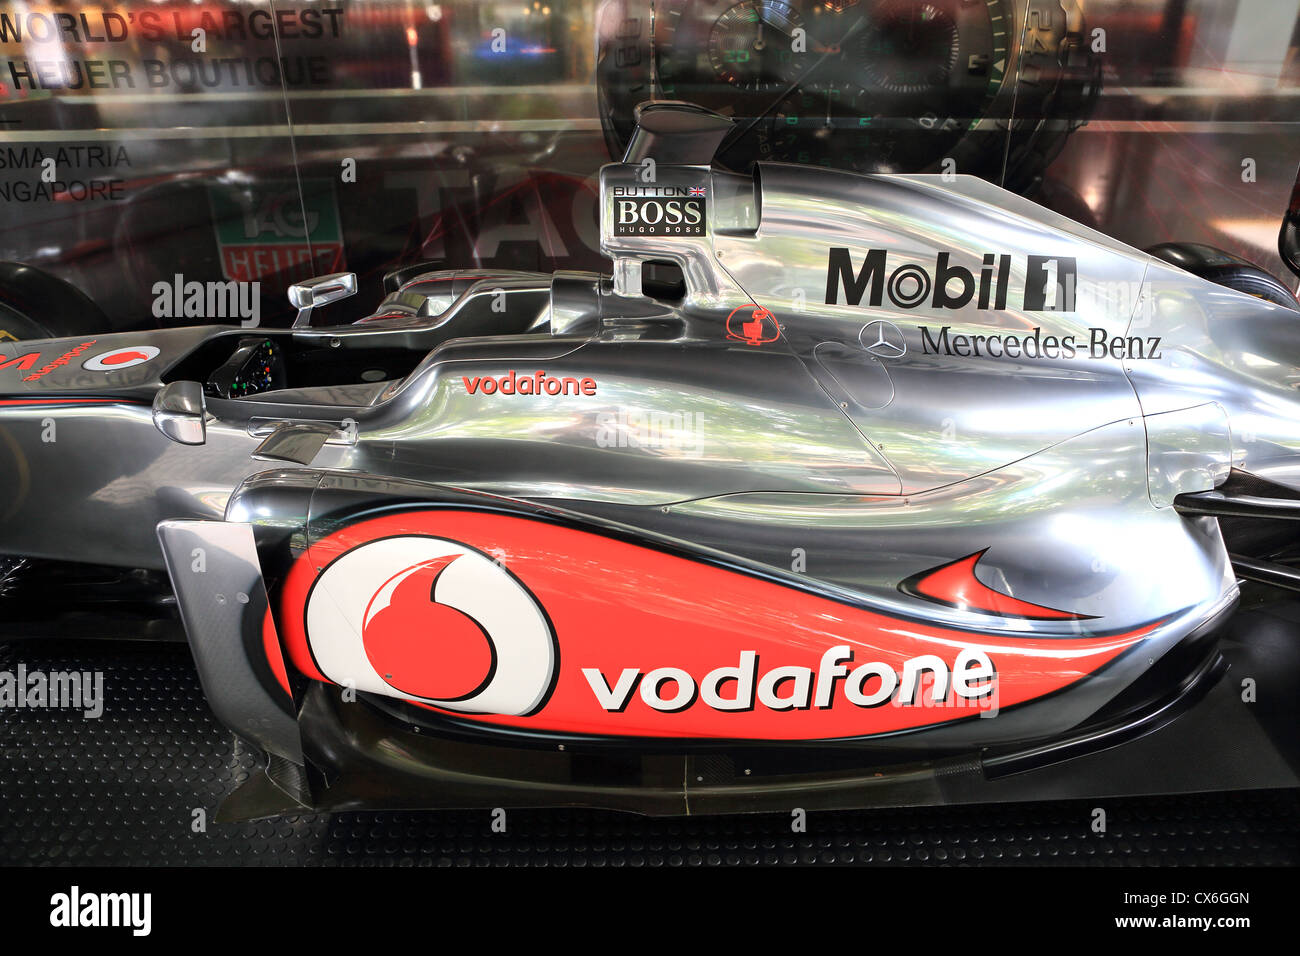 fcff70eeb75 Jenson Button s McLaren Mercedes Formula One racing car on display in  Singapore before the 2012 Singapore